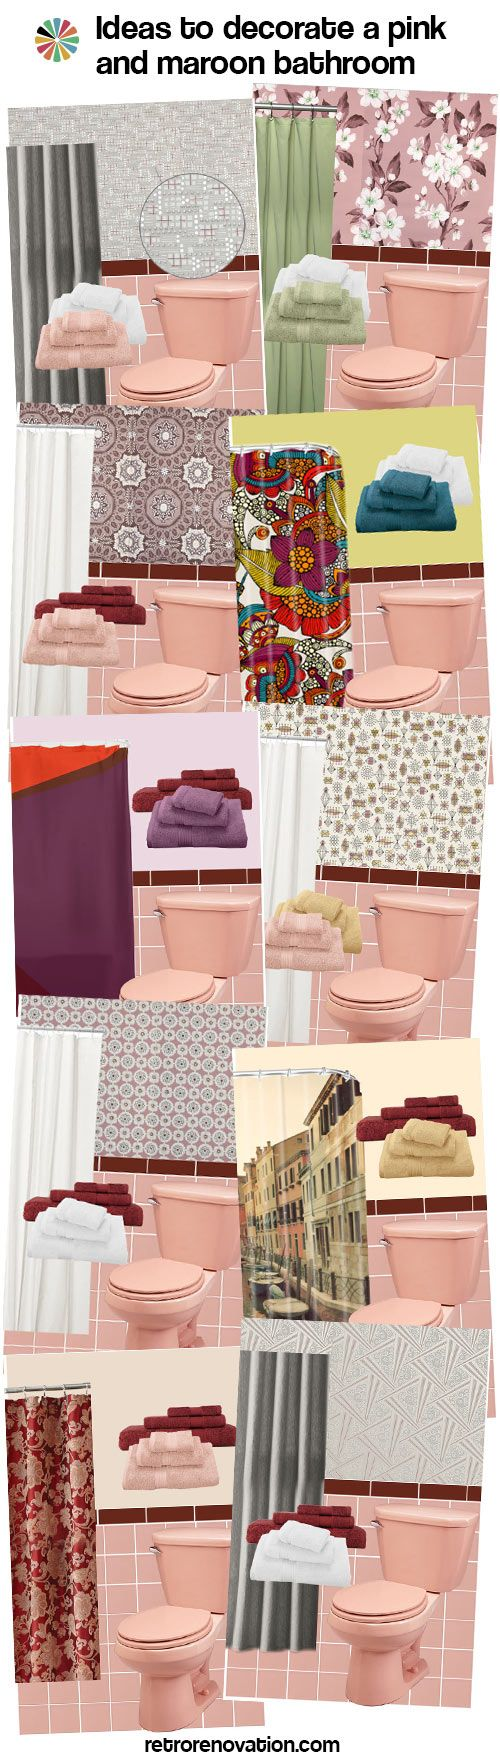 retro pink and maroon bathroom design ideas #midcentury